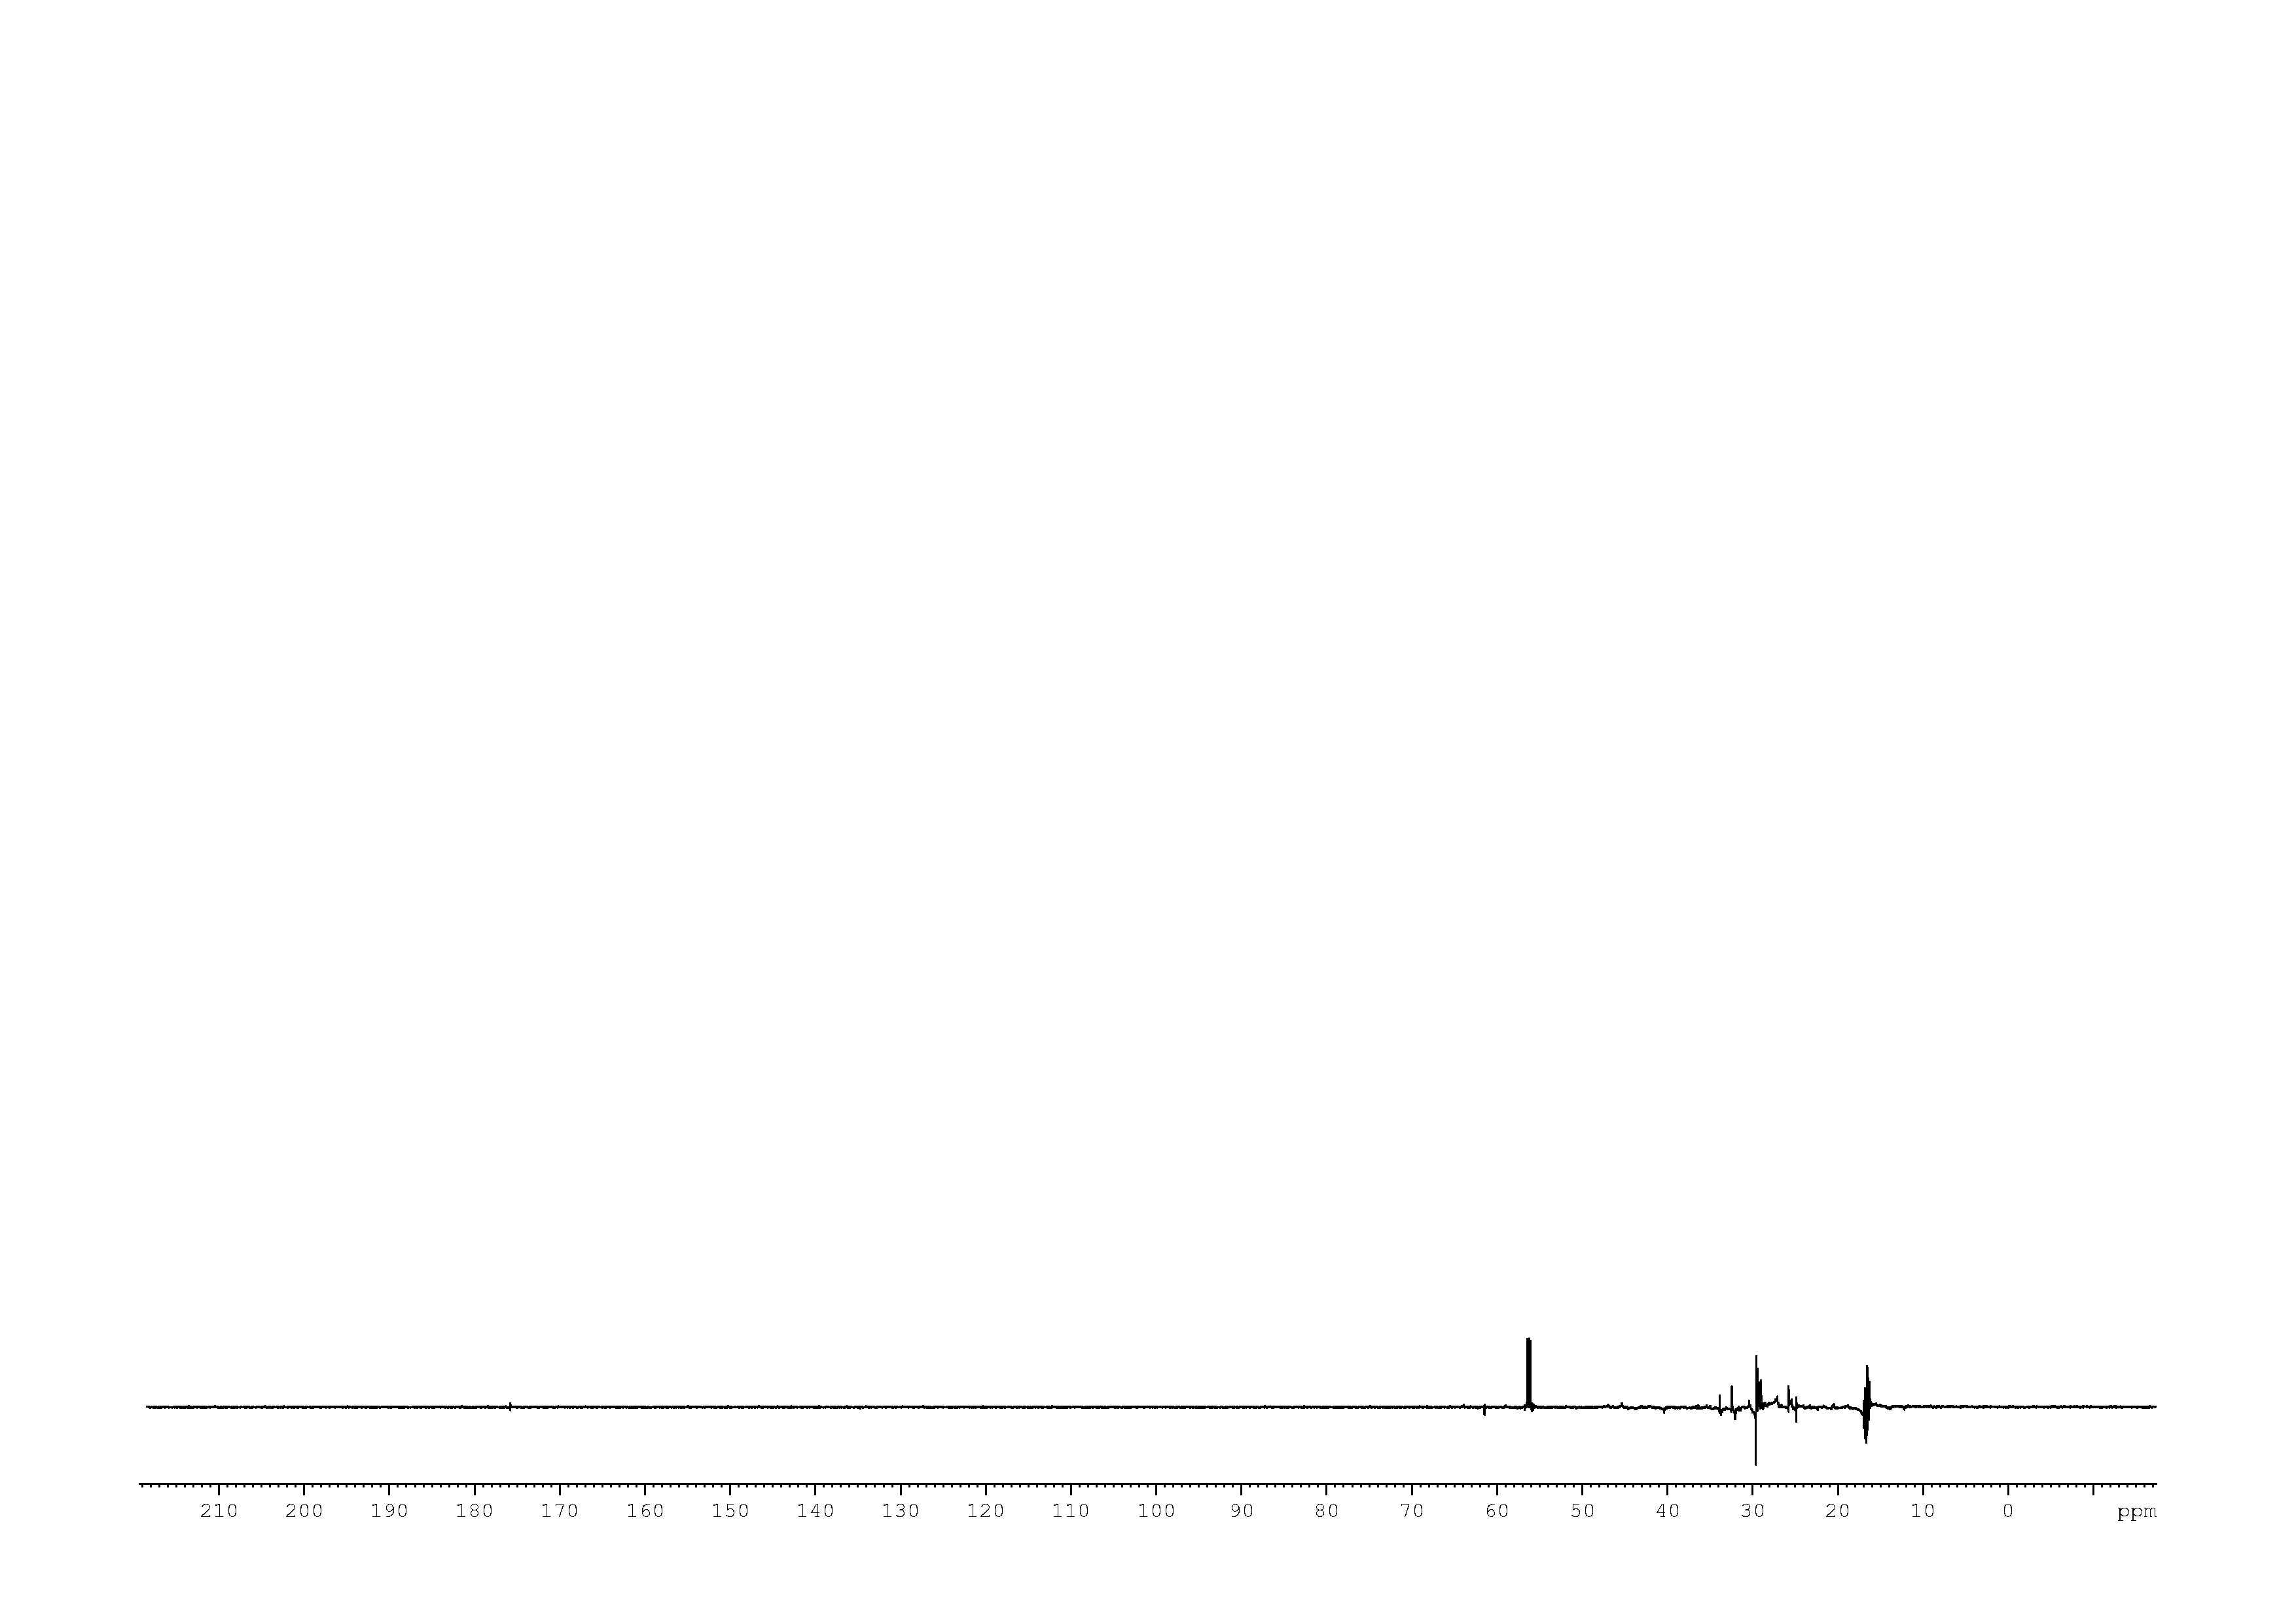 1D DEPT90, n/a spectrum for 16-hydroxyhexadecanoic acid